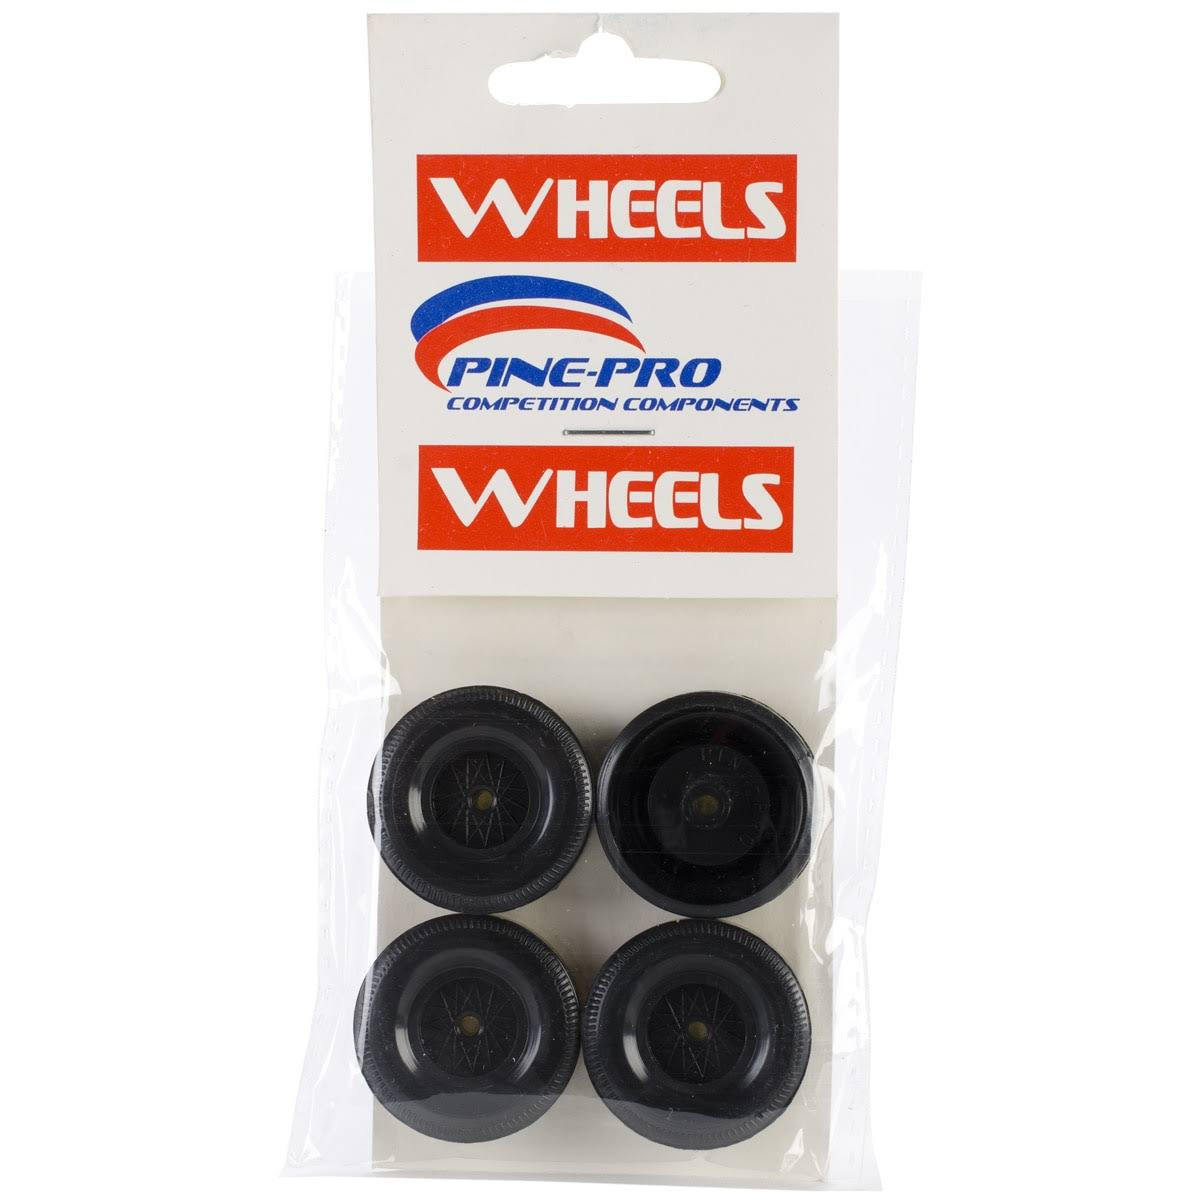 Pinepro Car Derby Wheels - 4 Pack